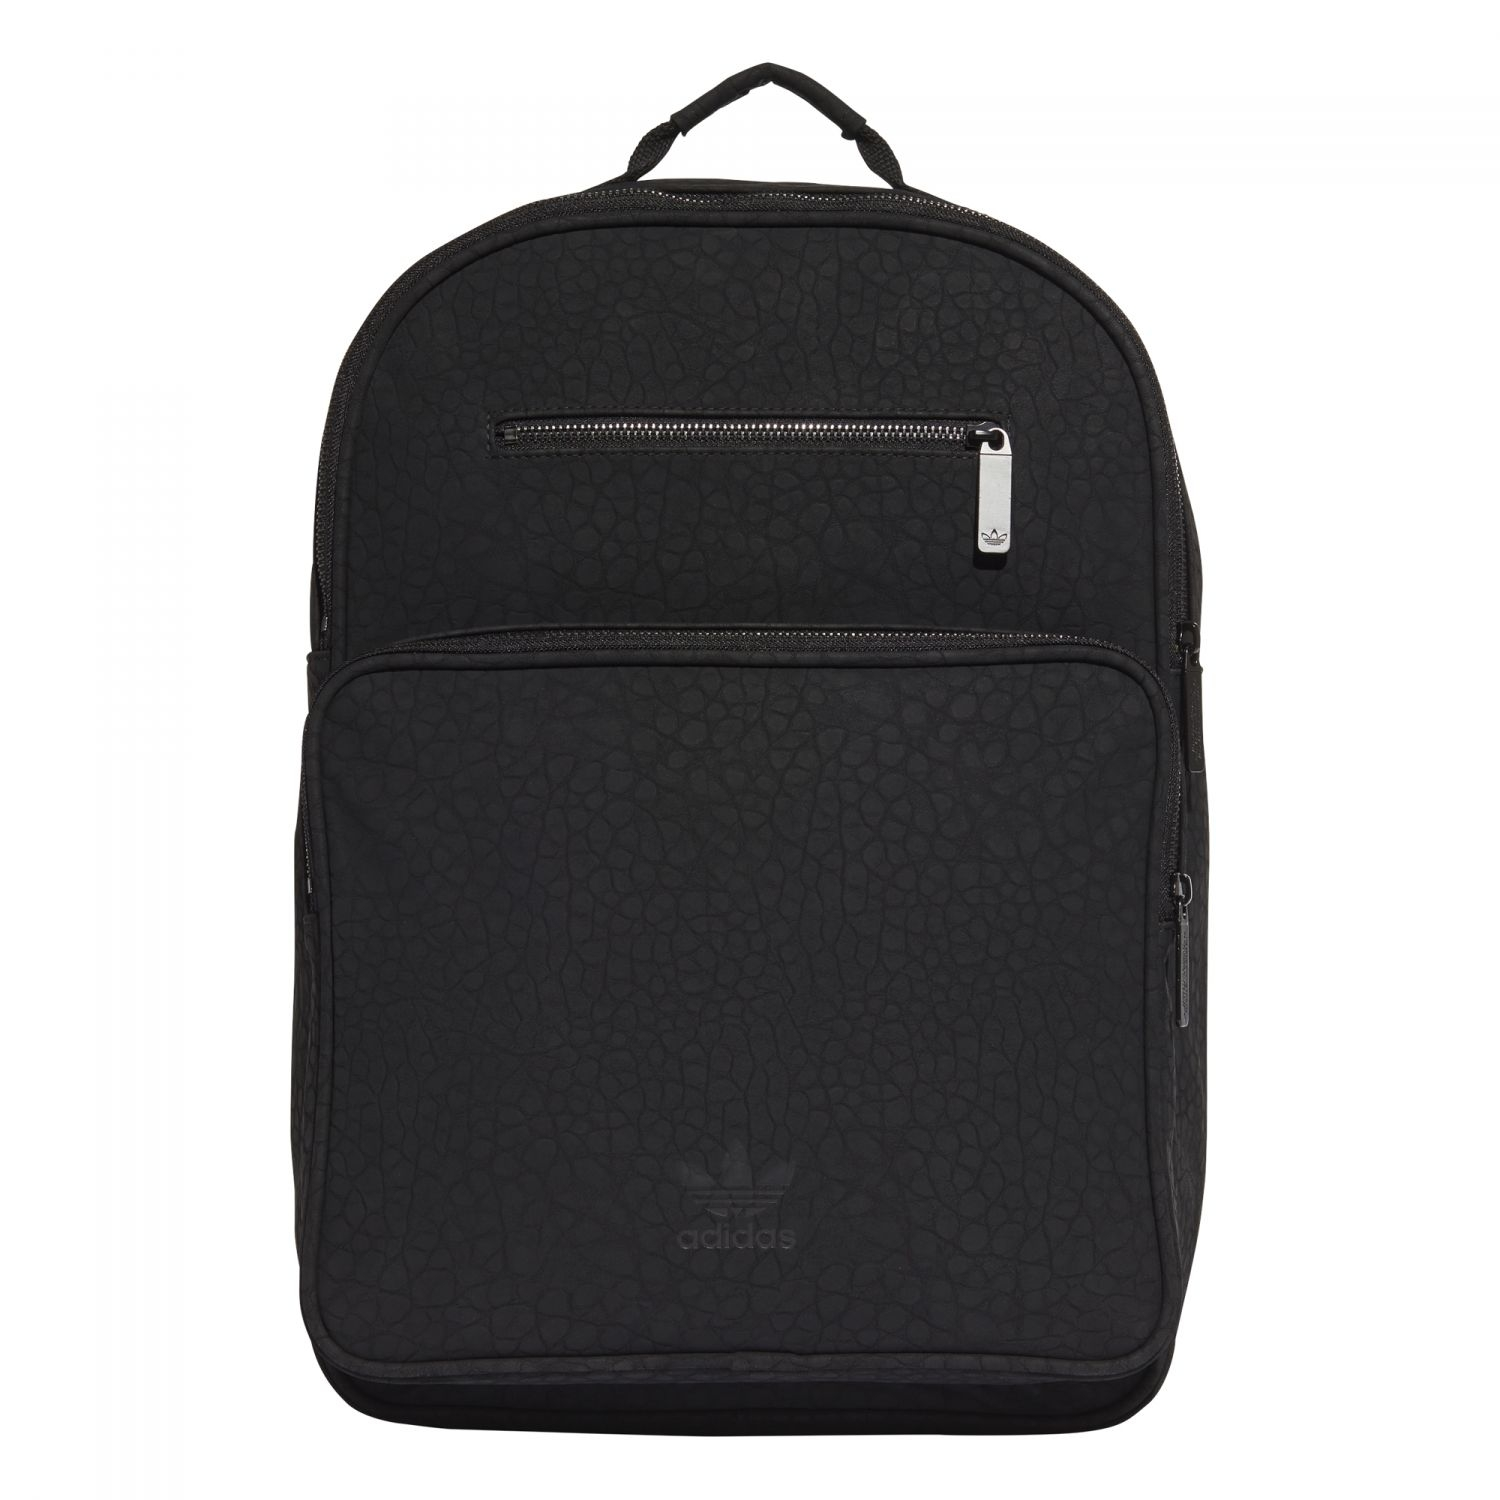 23214bf4a1 adidas Originals AC F Classic Backpack Damen Freizeit Rucksack ...